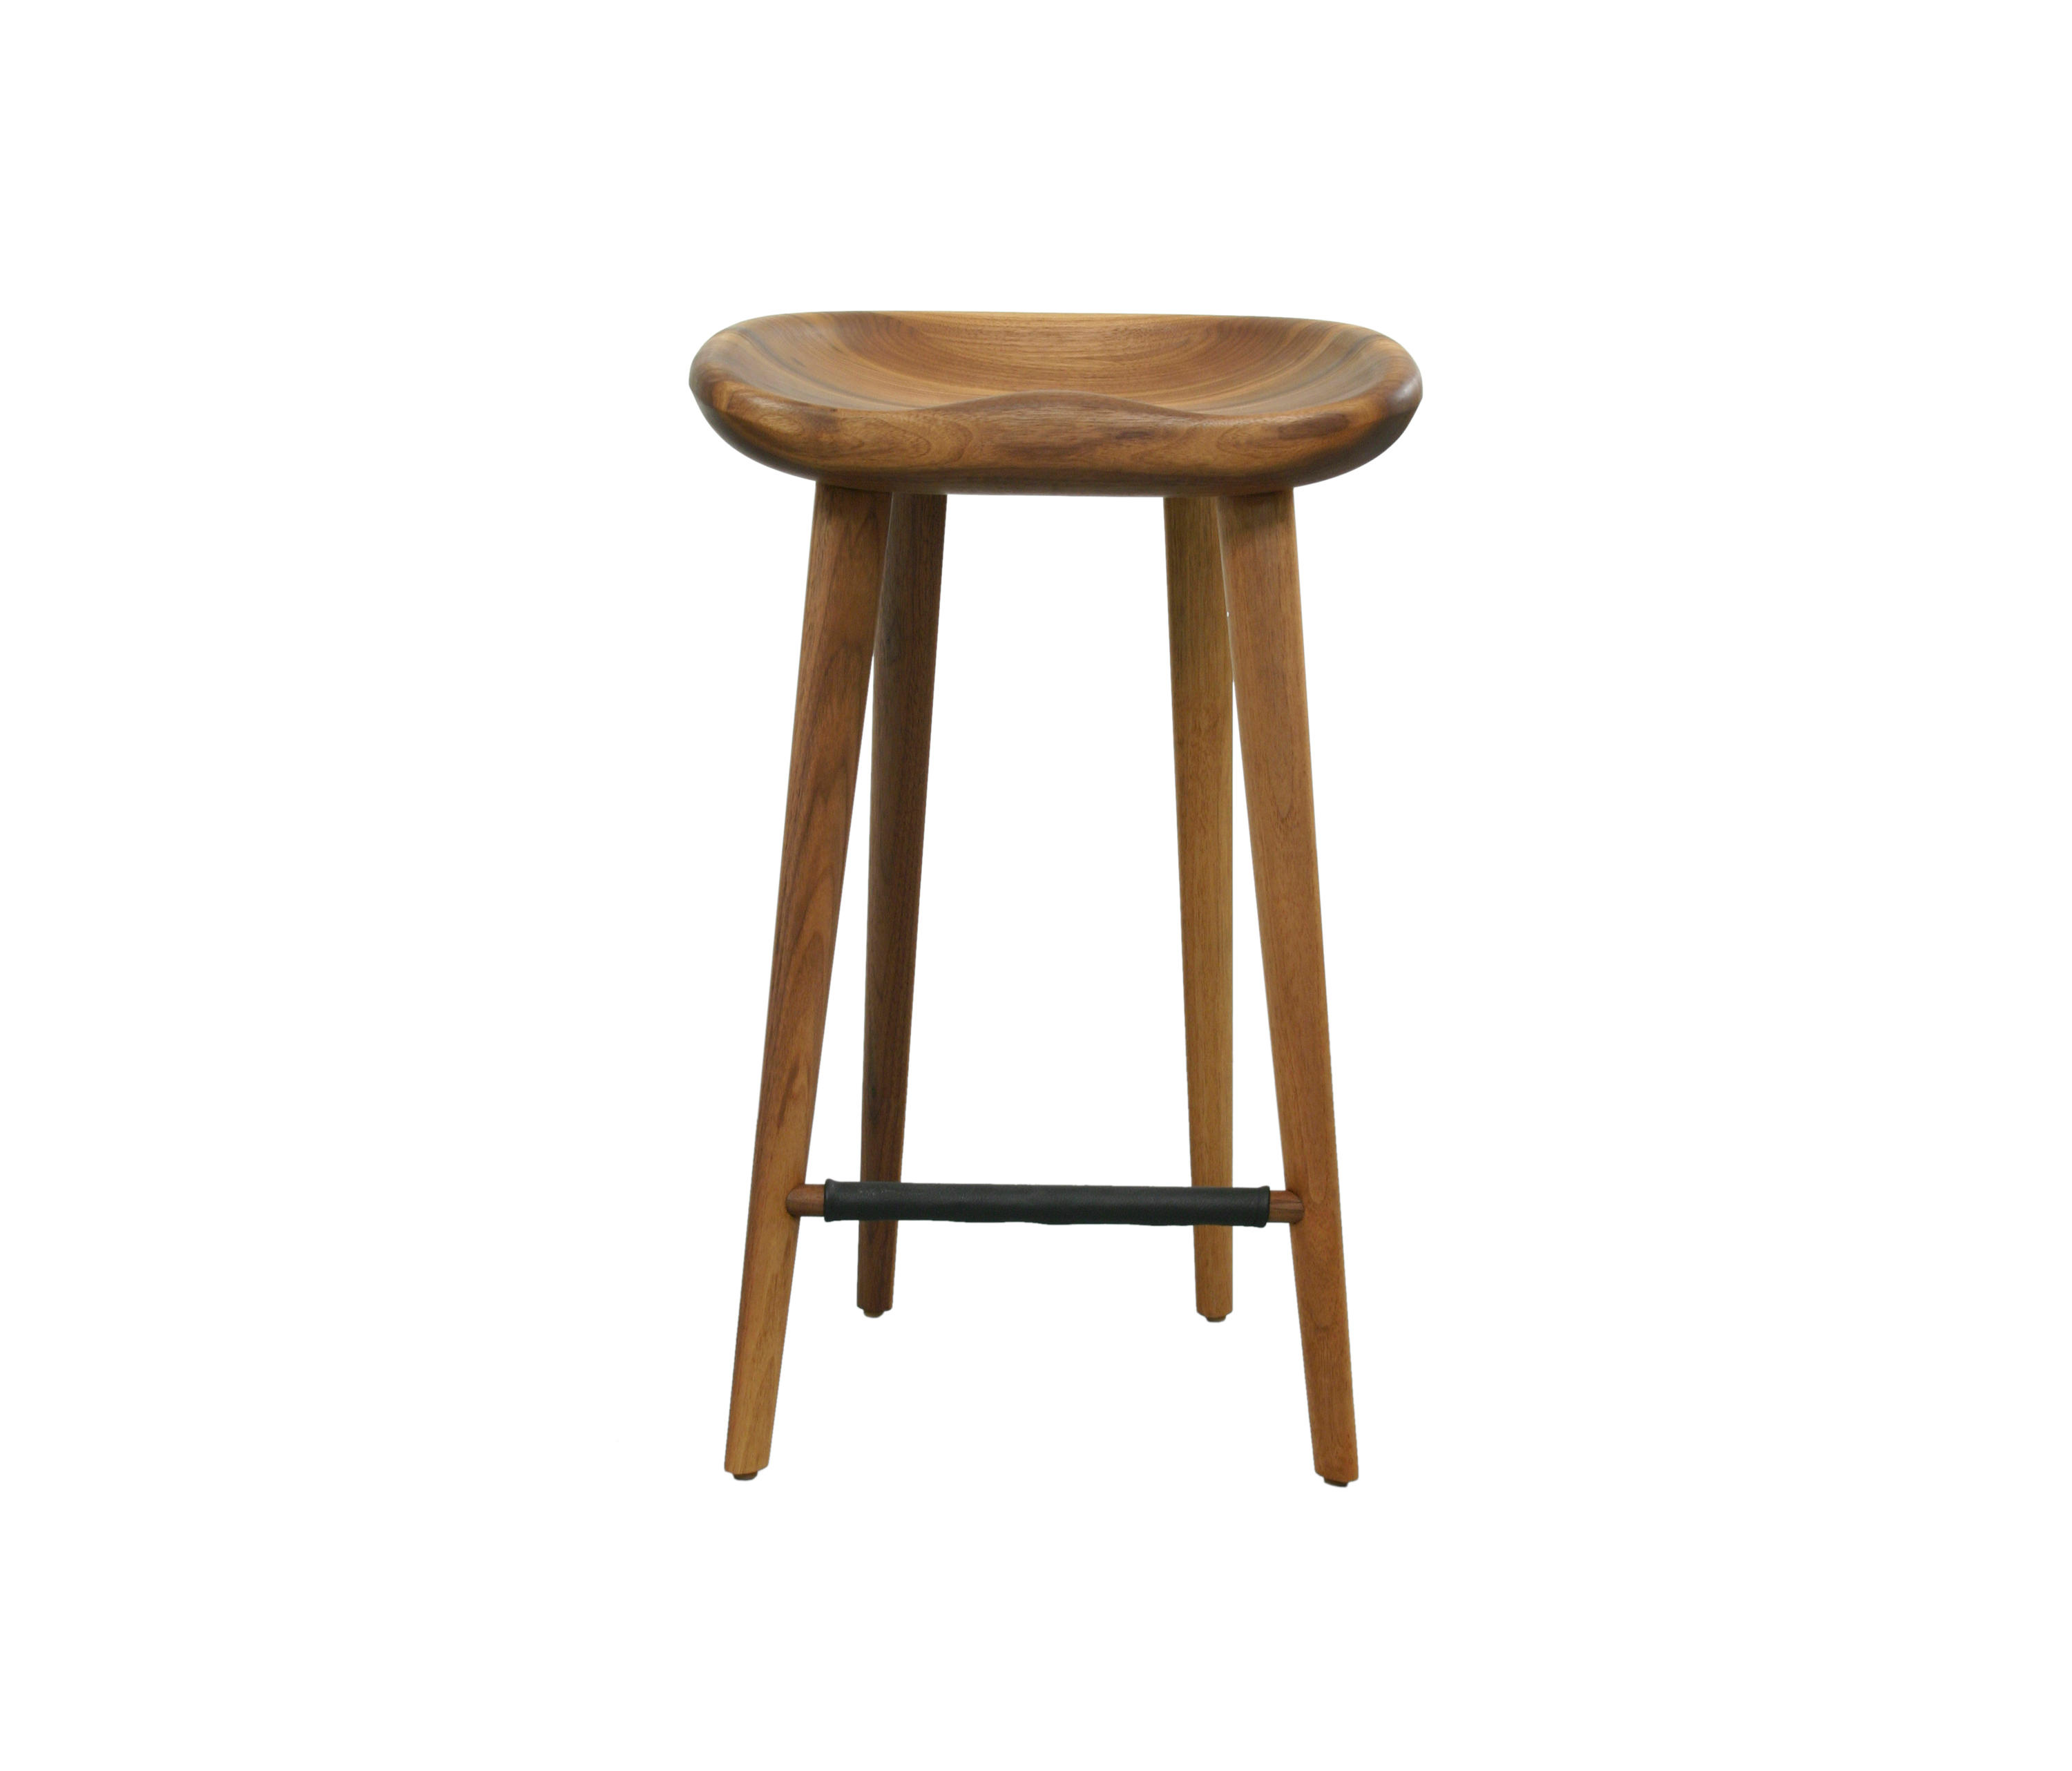 stool table stools armless synthetic bar and barstool tops barchair bases teak outdoor bistro tables parisian green sol chairs